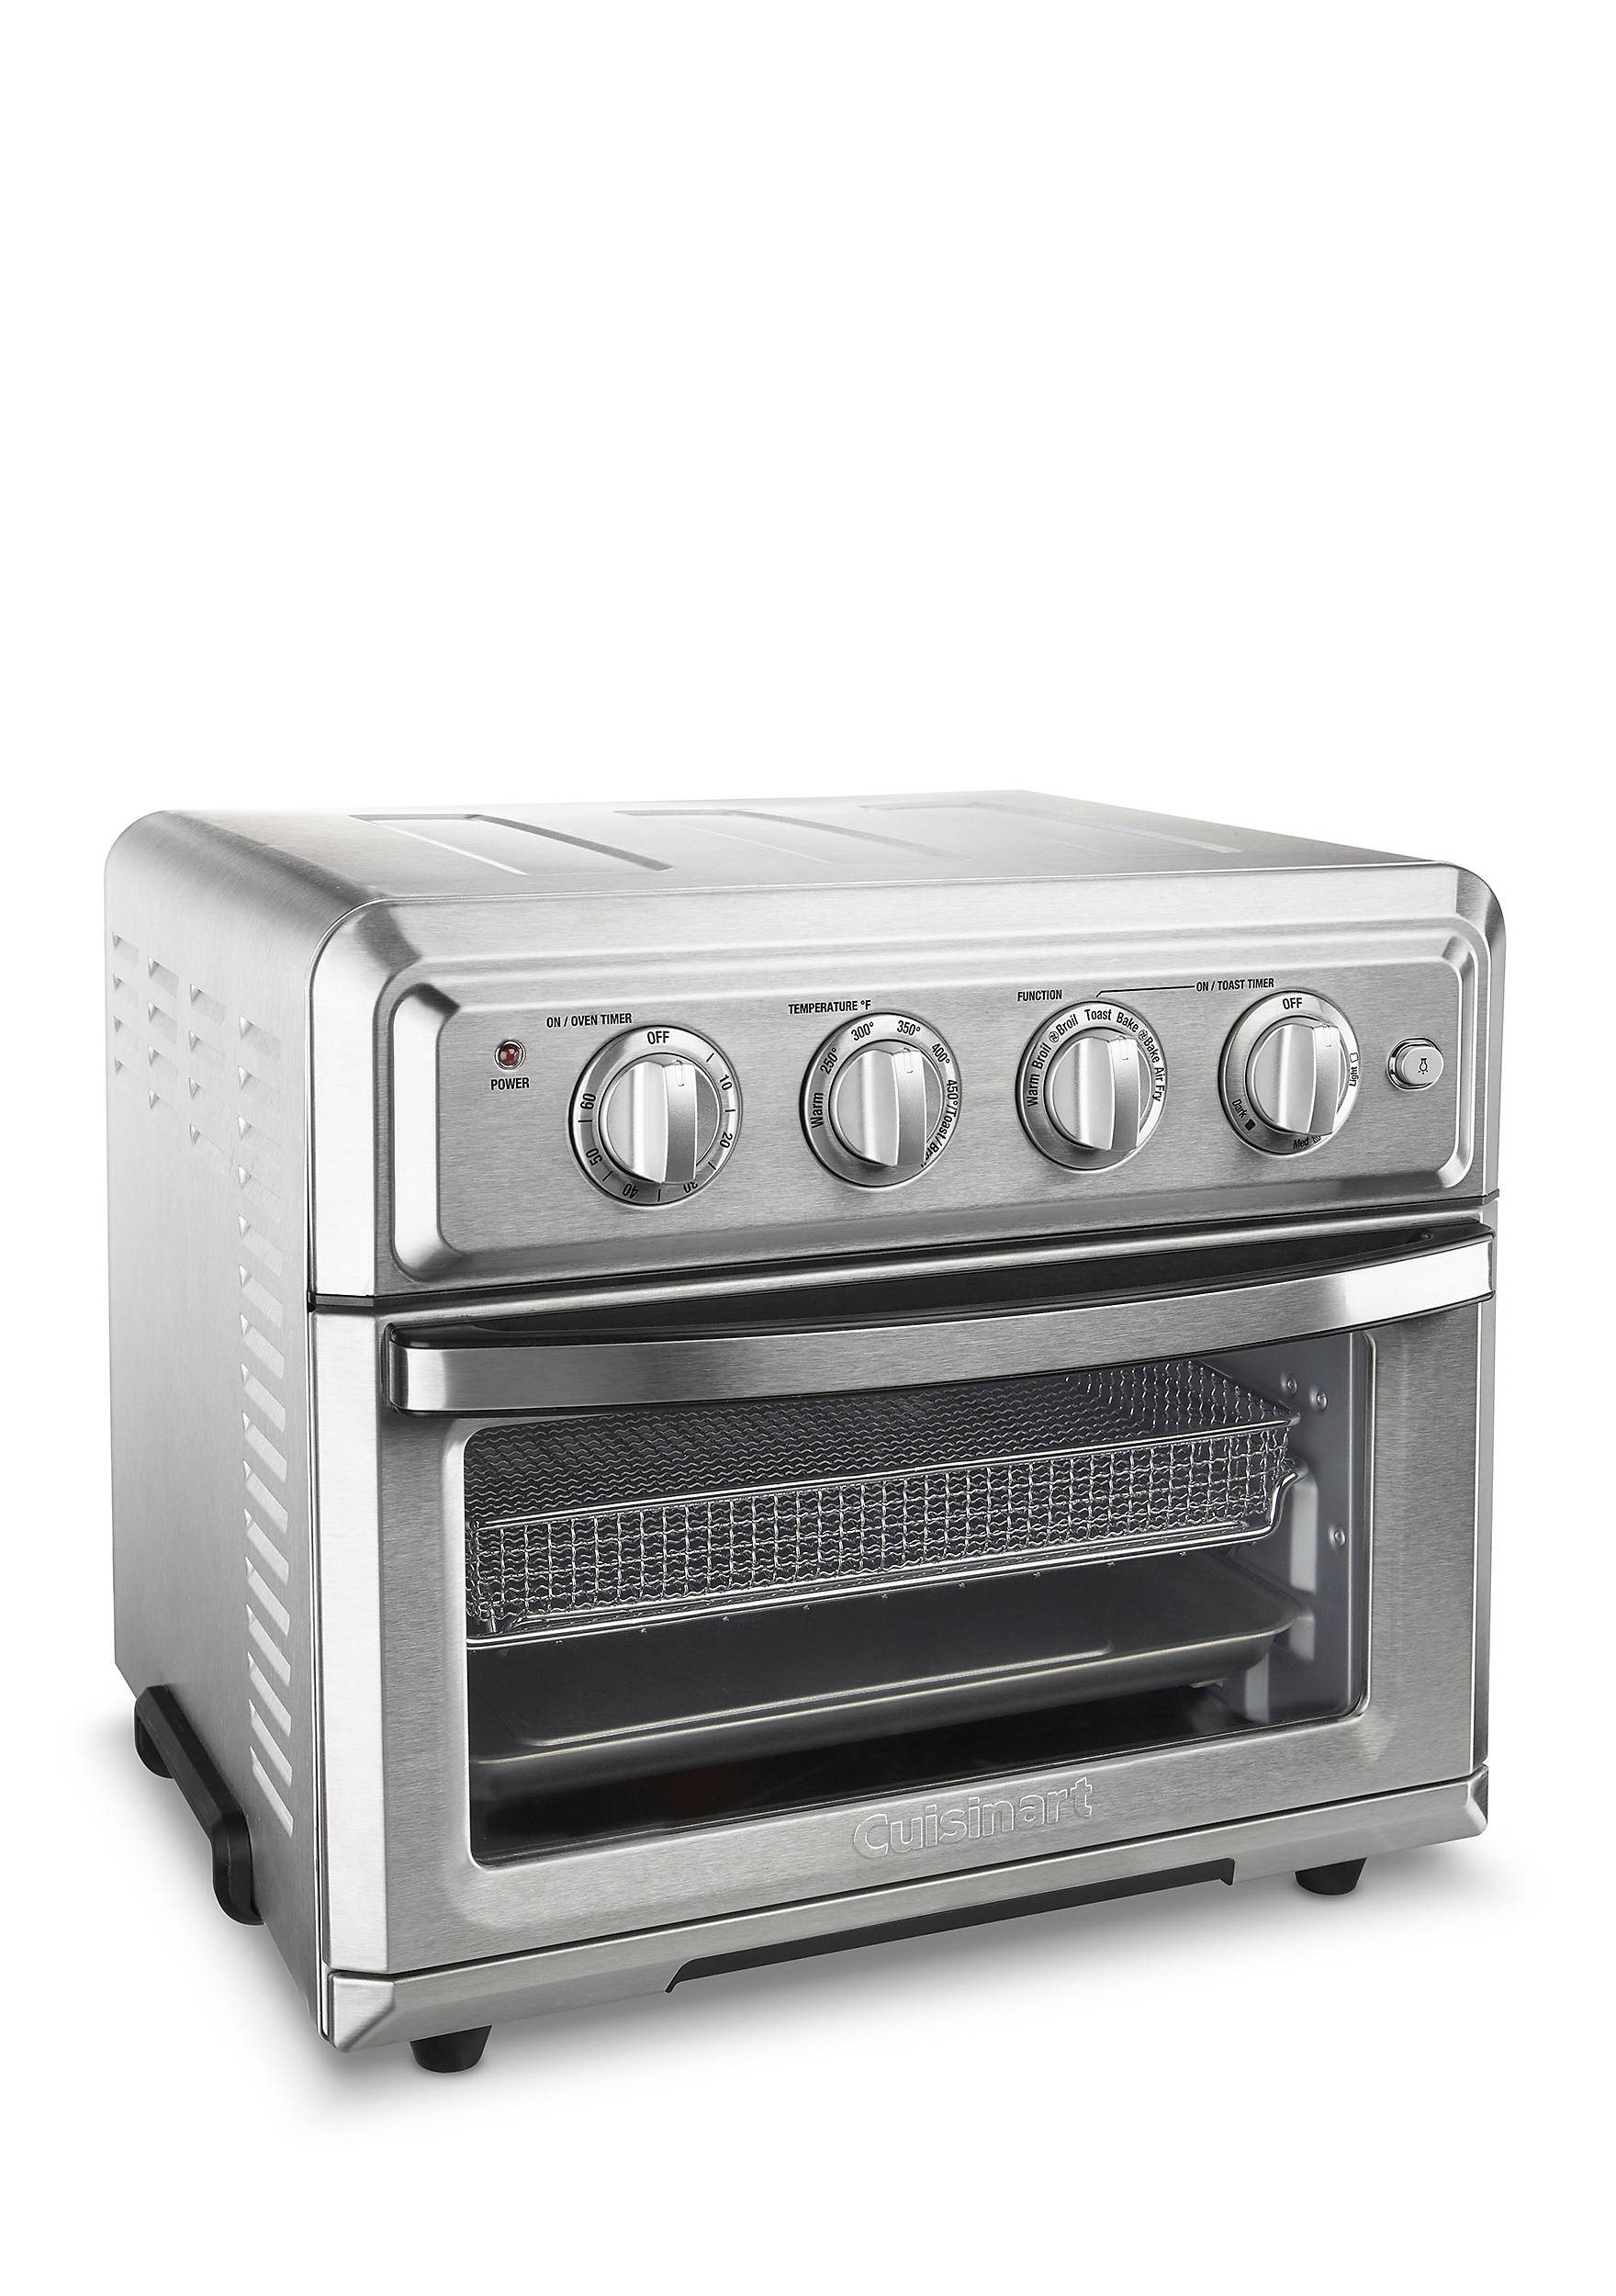 electric steel sale heo toaster oven stainless and baking hanabishi dsc for user a kitchen